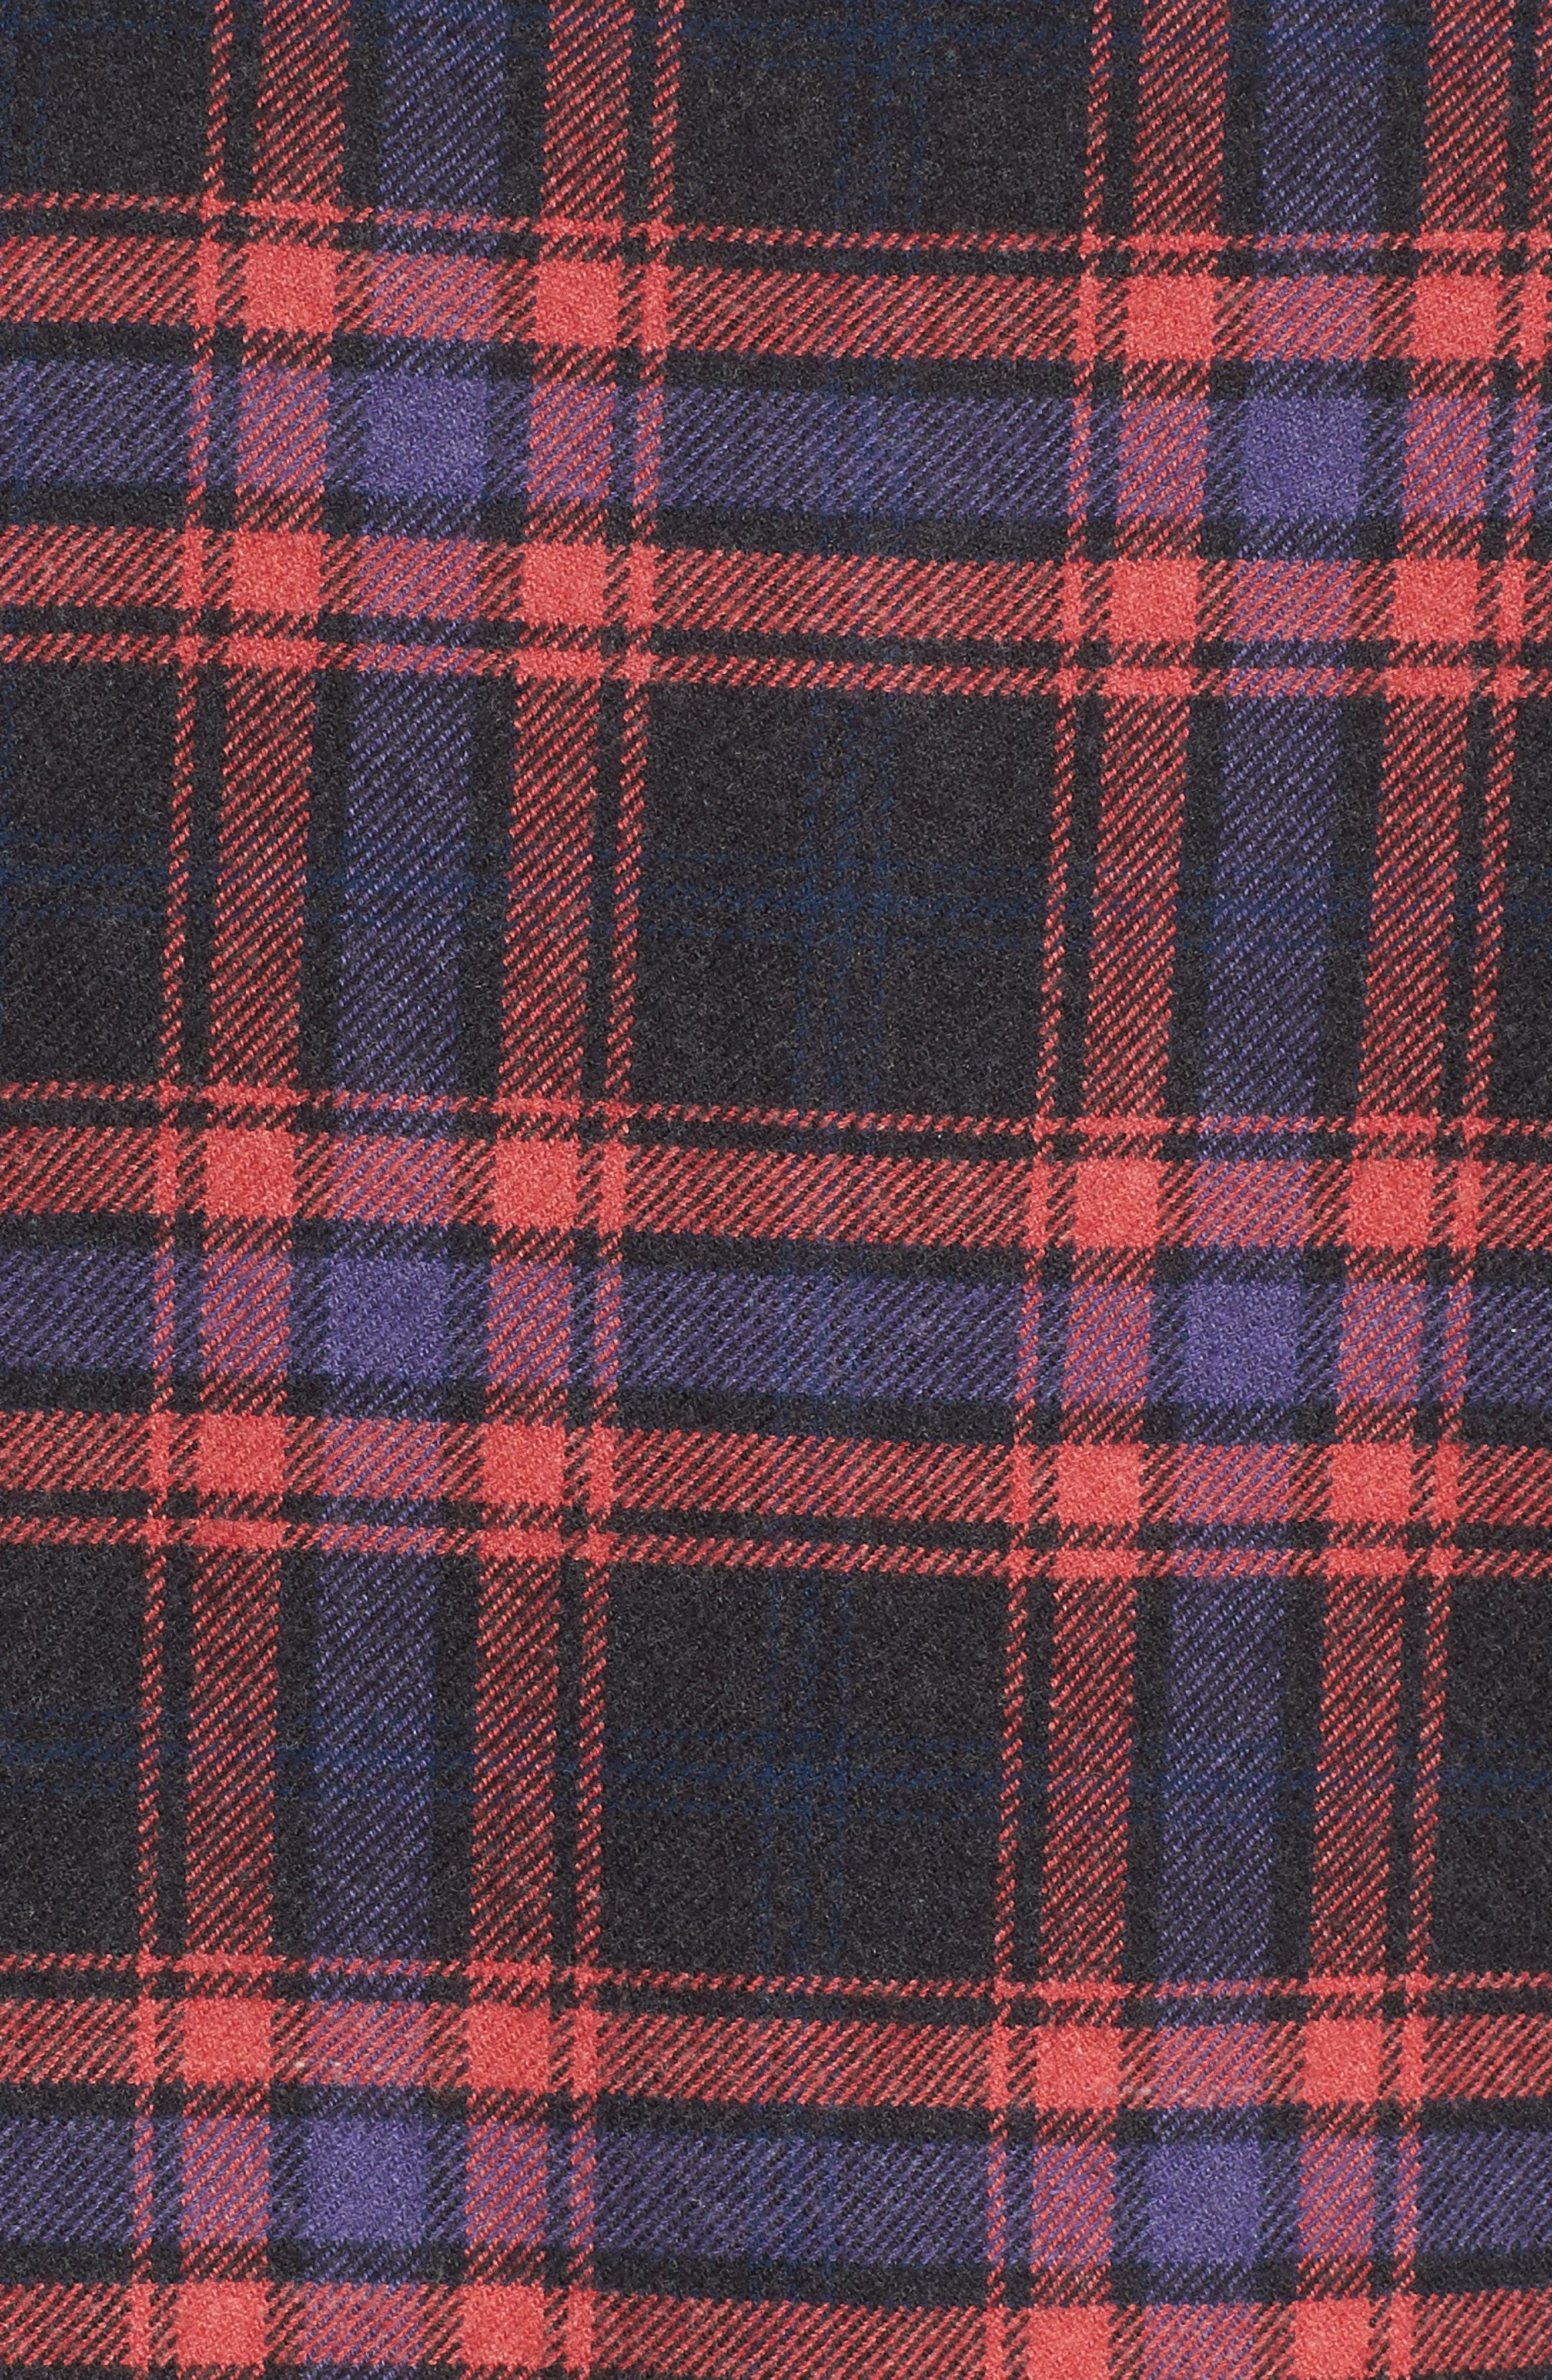 Chaucer Heritage Flannel Shirt,                             Alternate thumbnail 5, color,                             641